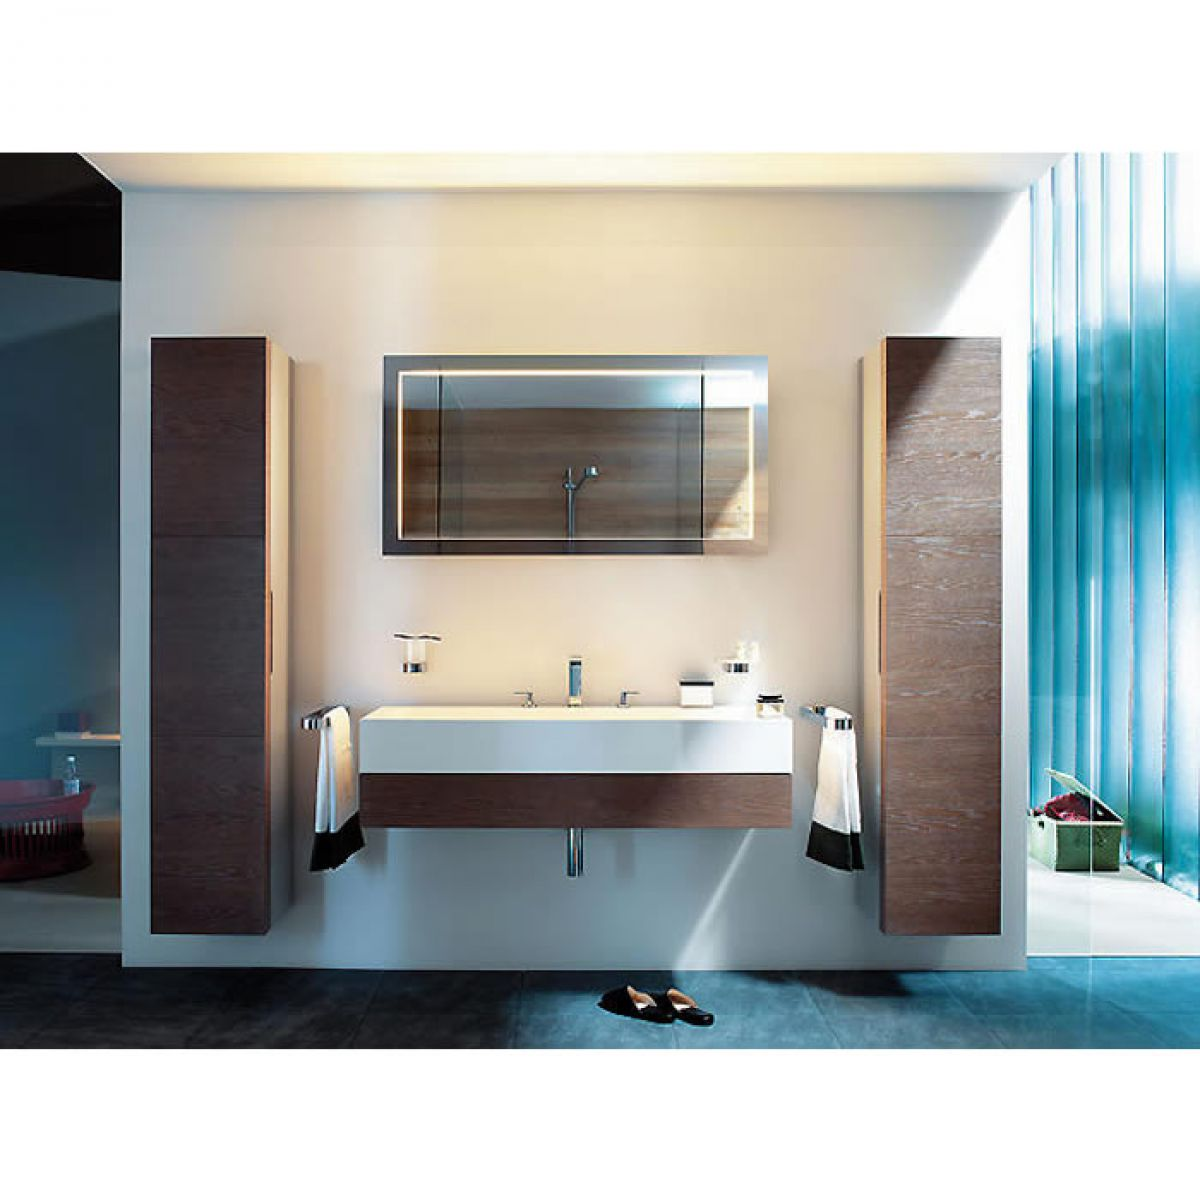 keuco edition 300 light mirror uk bathrooms. Black Bedroom Furniture Sets. Home Design Ideas